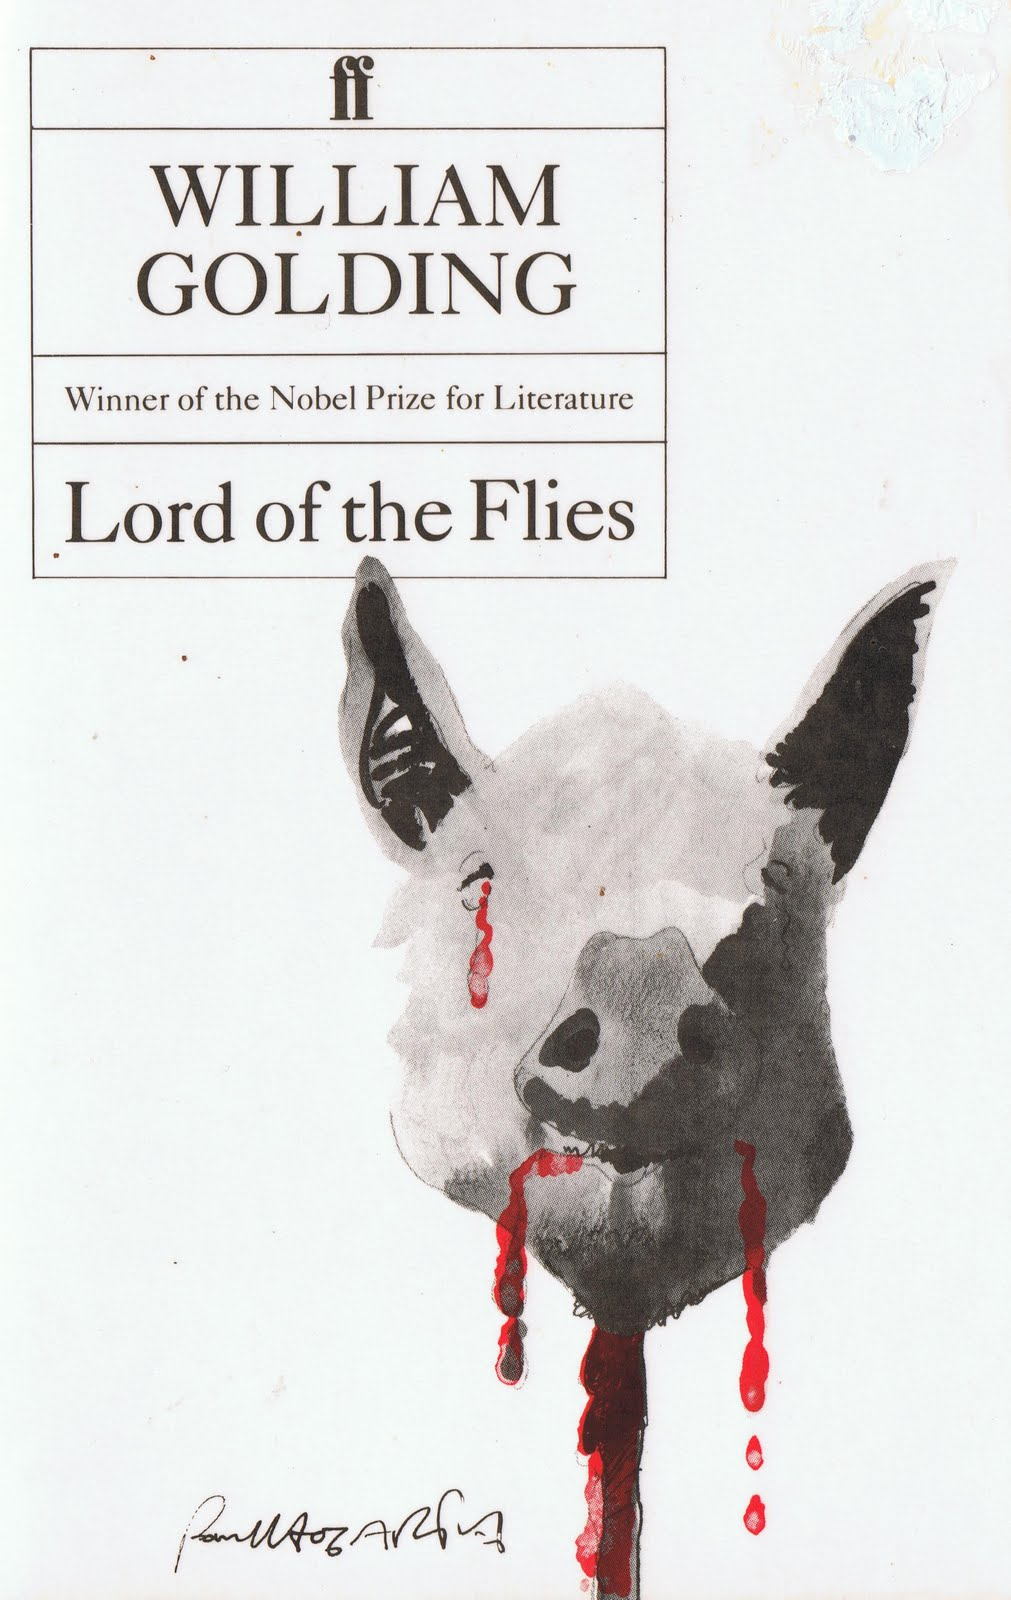 How does Roger change in Lord of the Flies by William Golding?